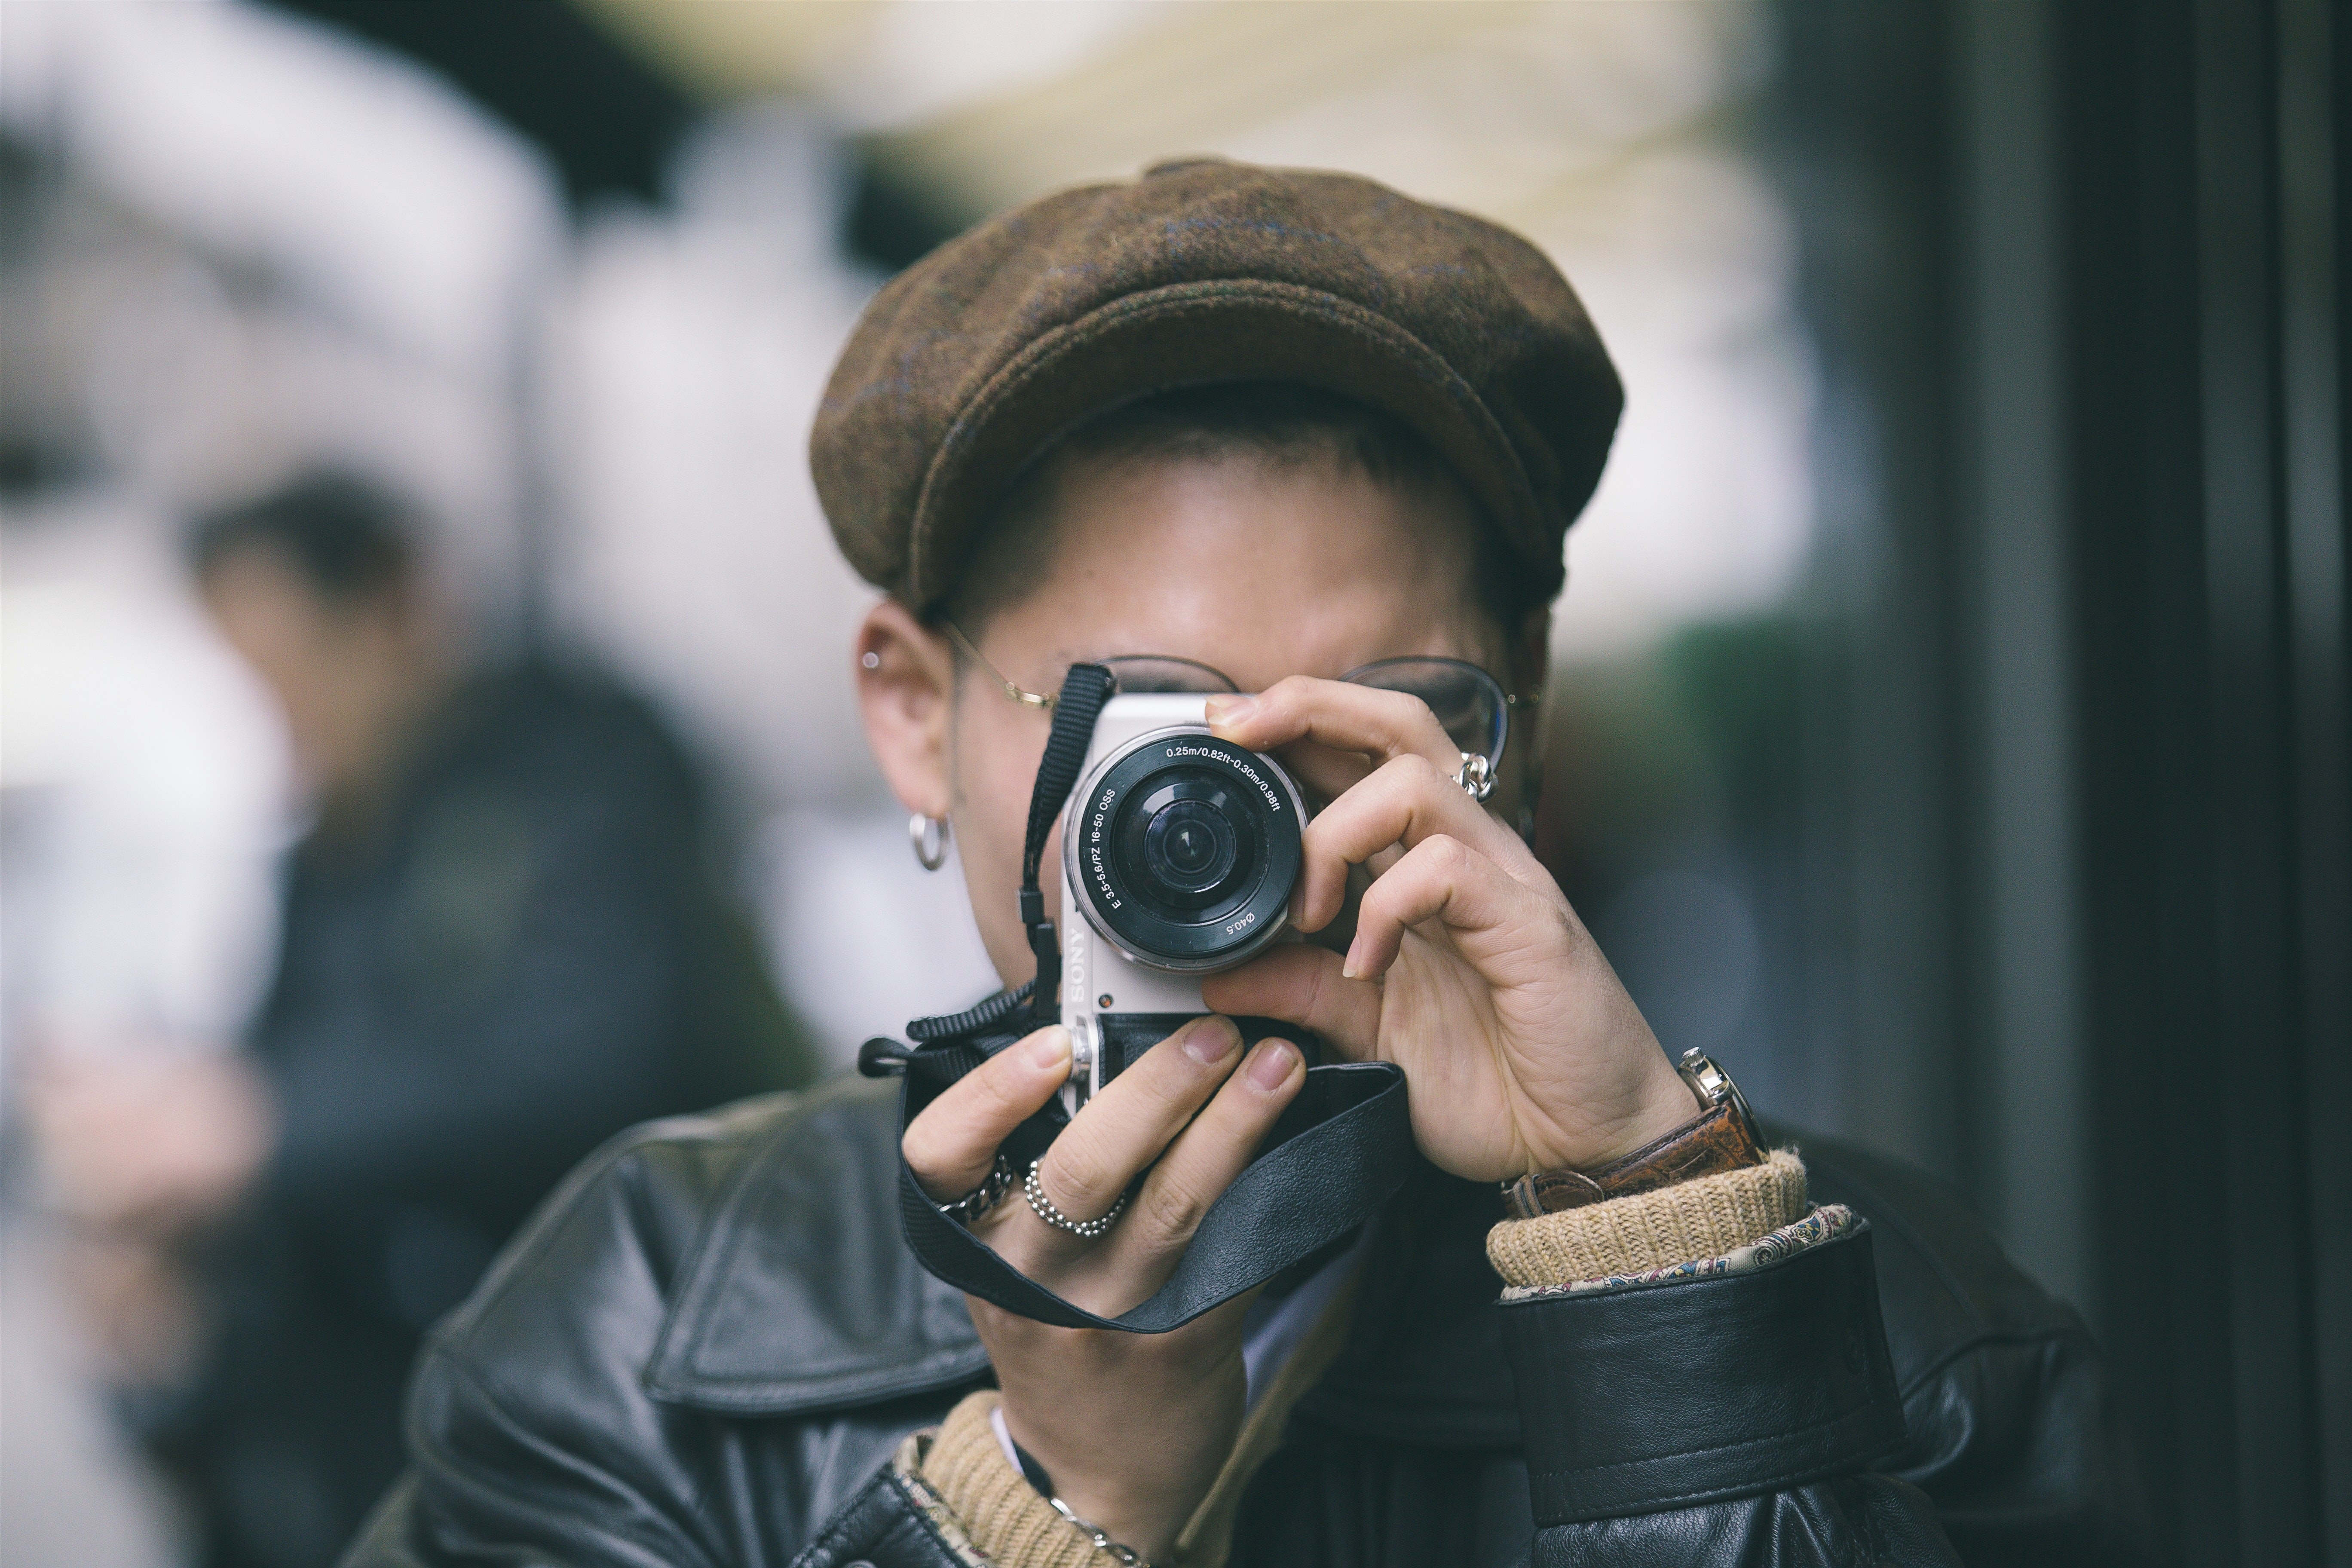 A person wearing a hat taking a photo with a white Sony camera on Brewer Street